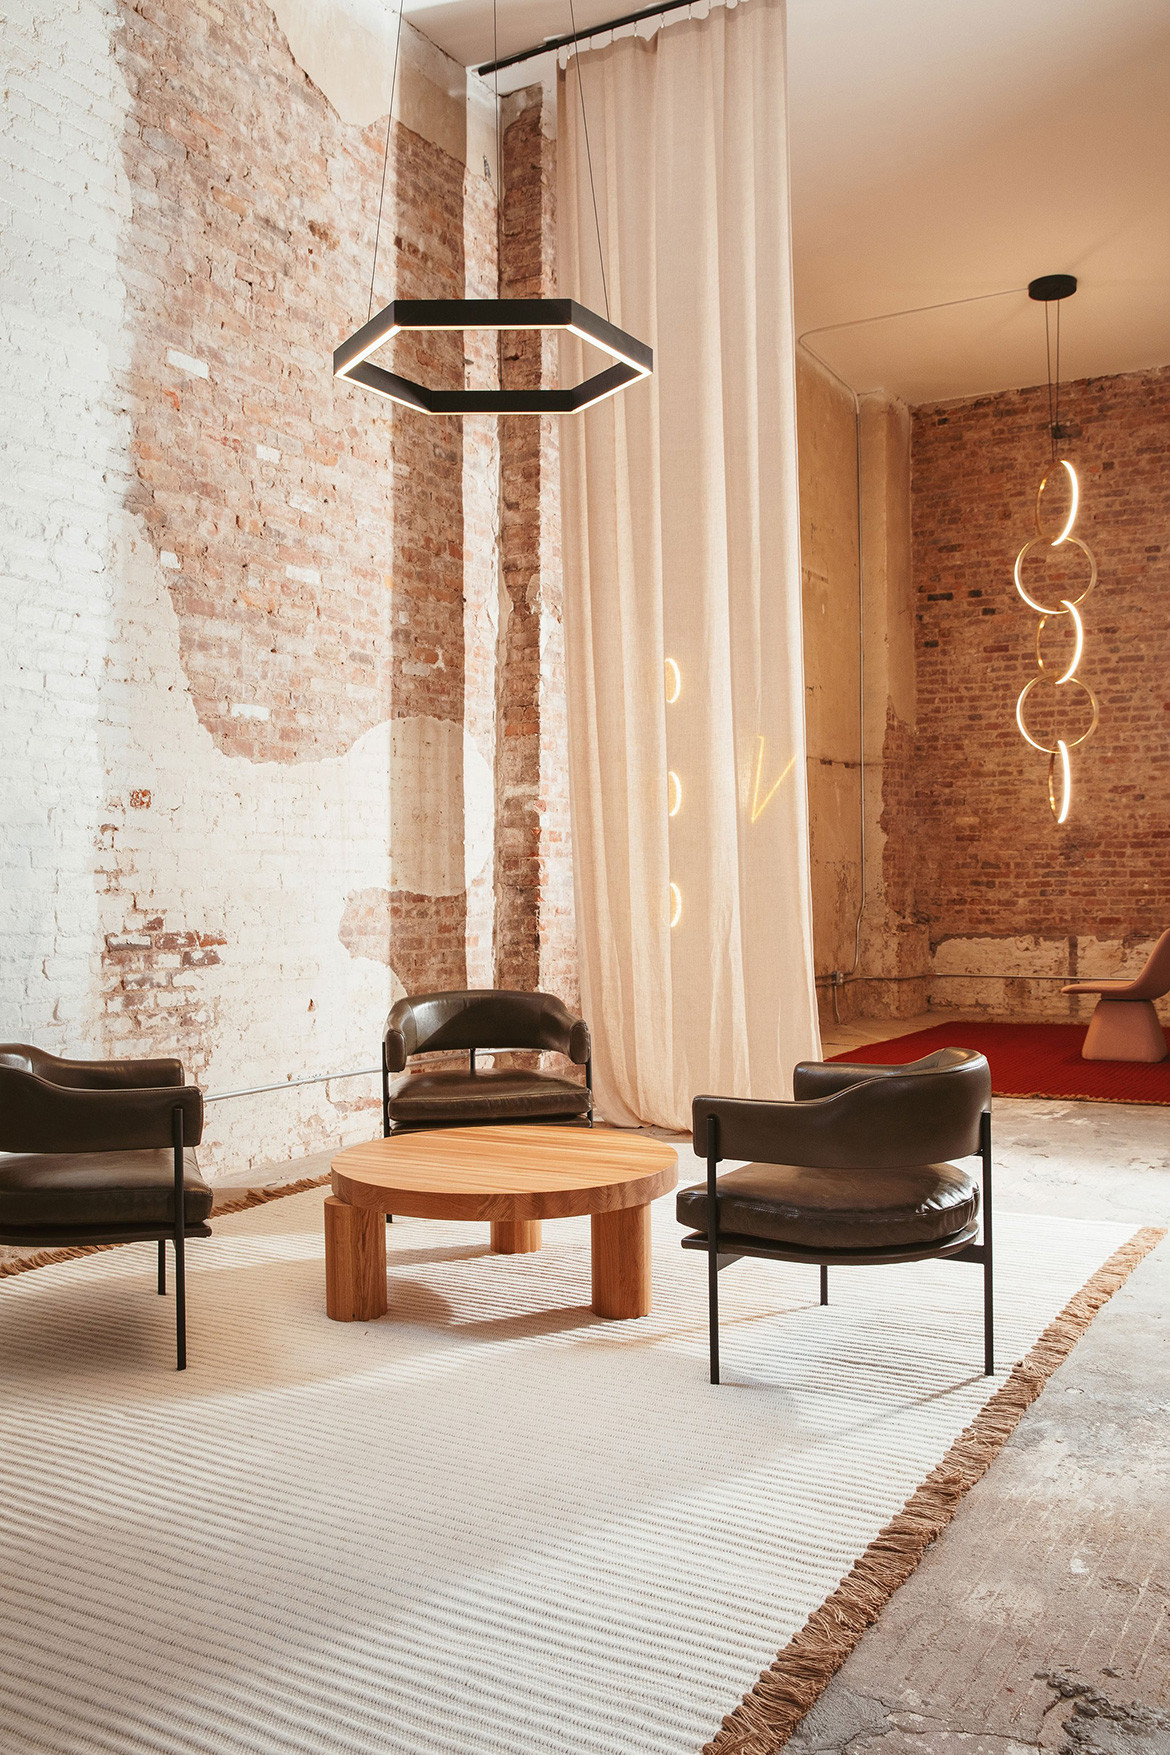 Part of the ICFF events for 2018 included this pop-up showroom in TriBeCa from New Zealand furniture designers Resident